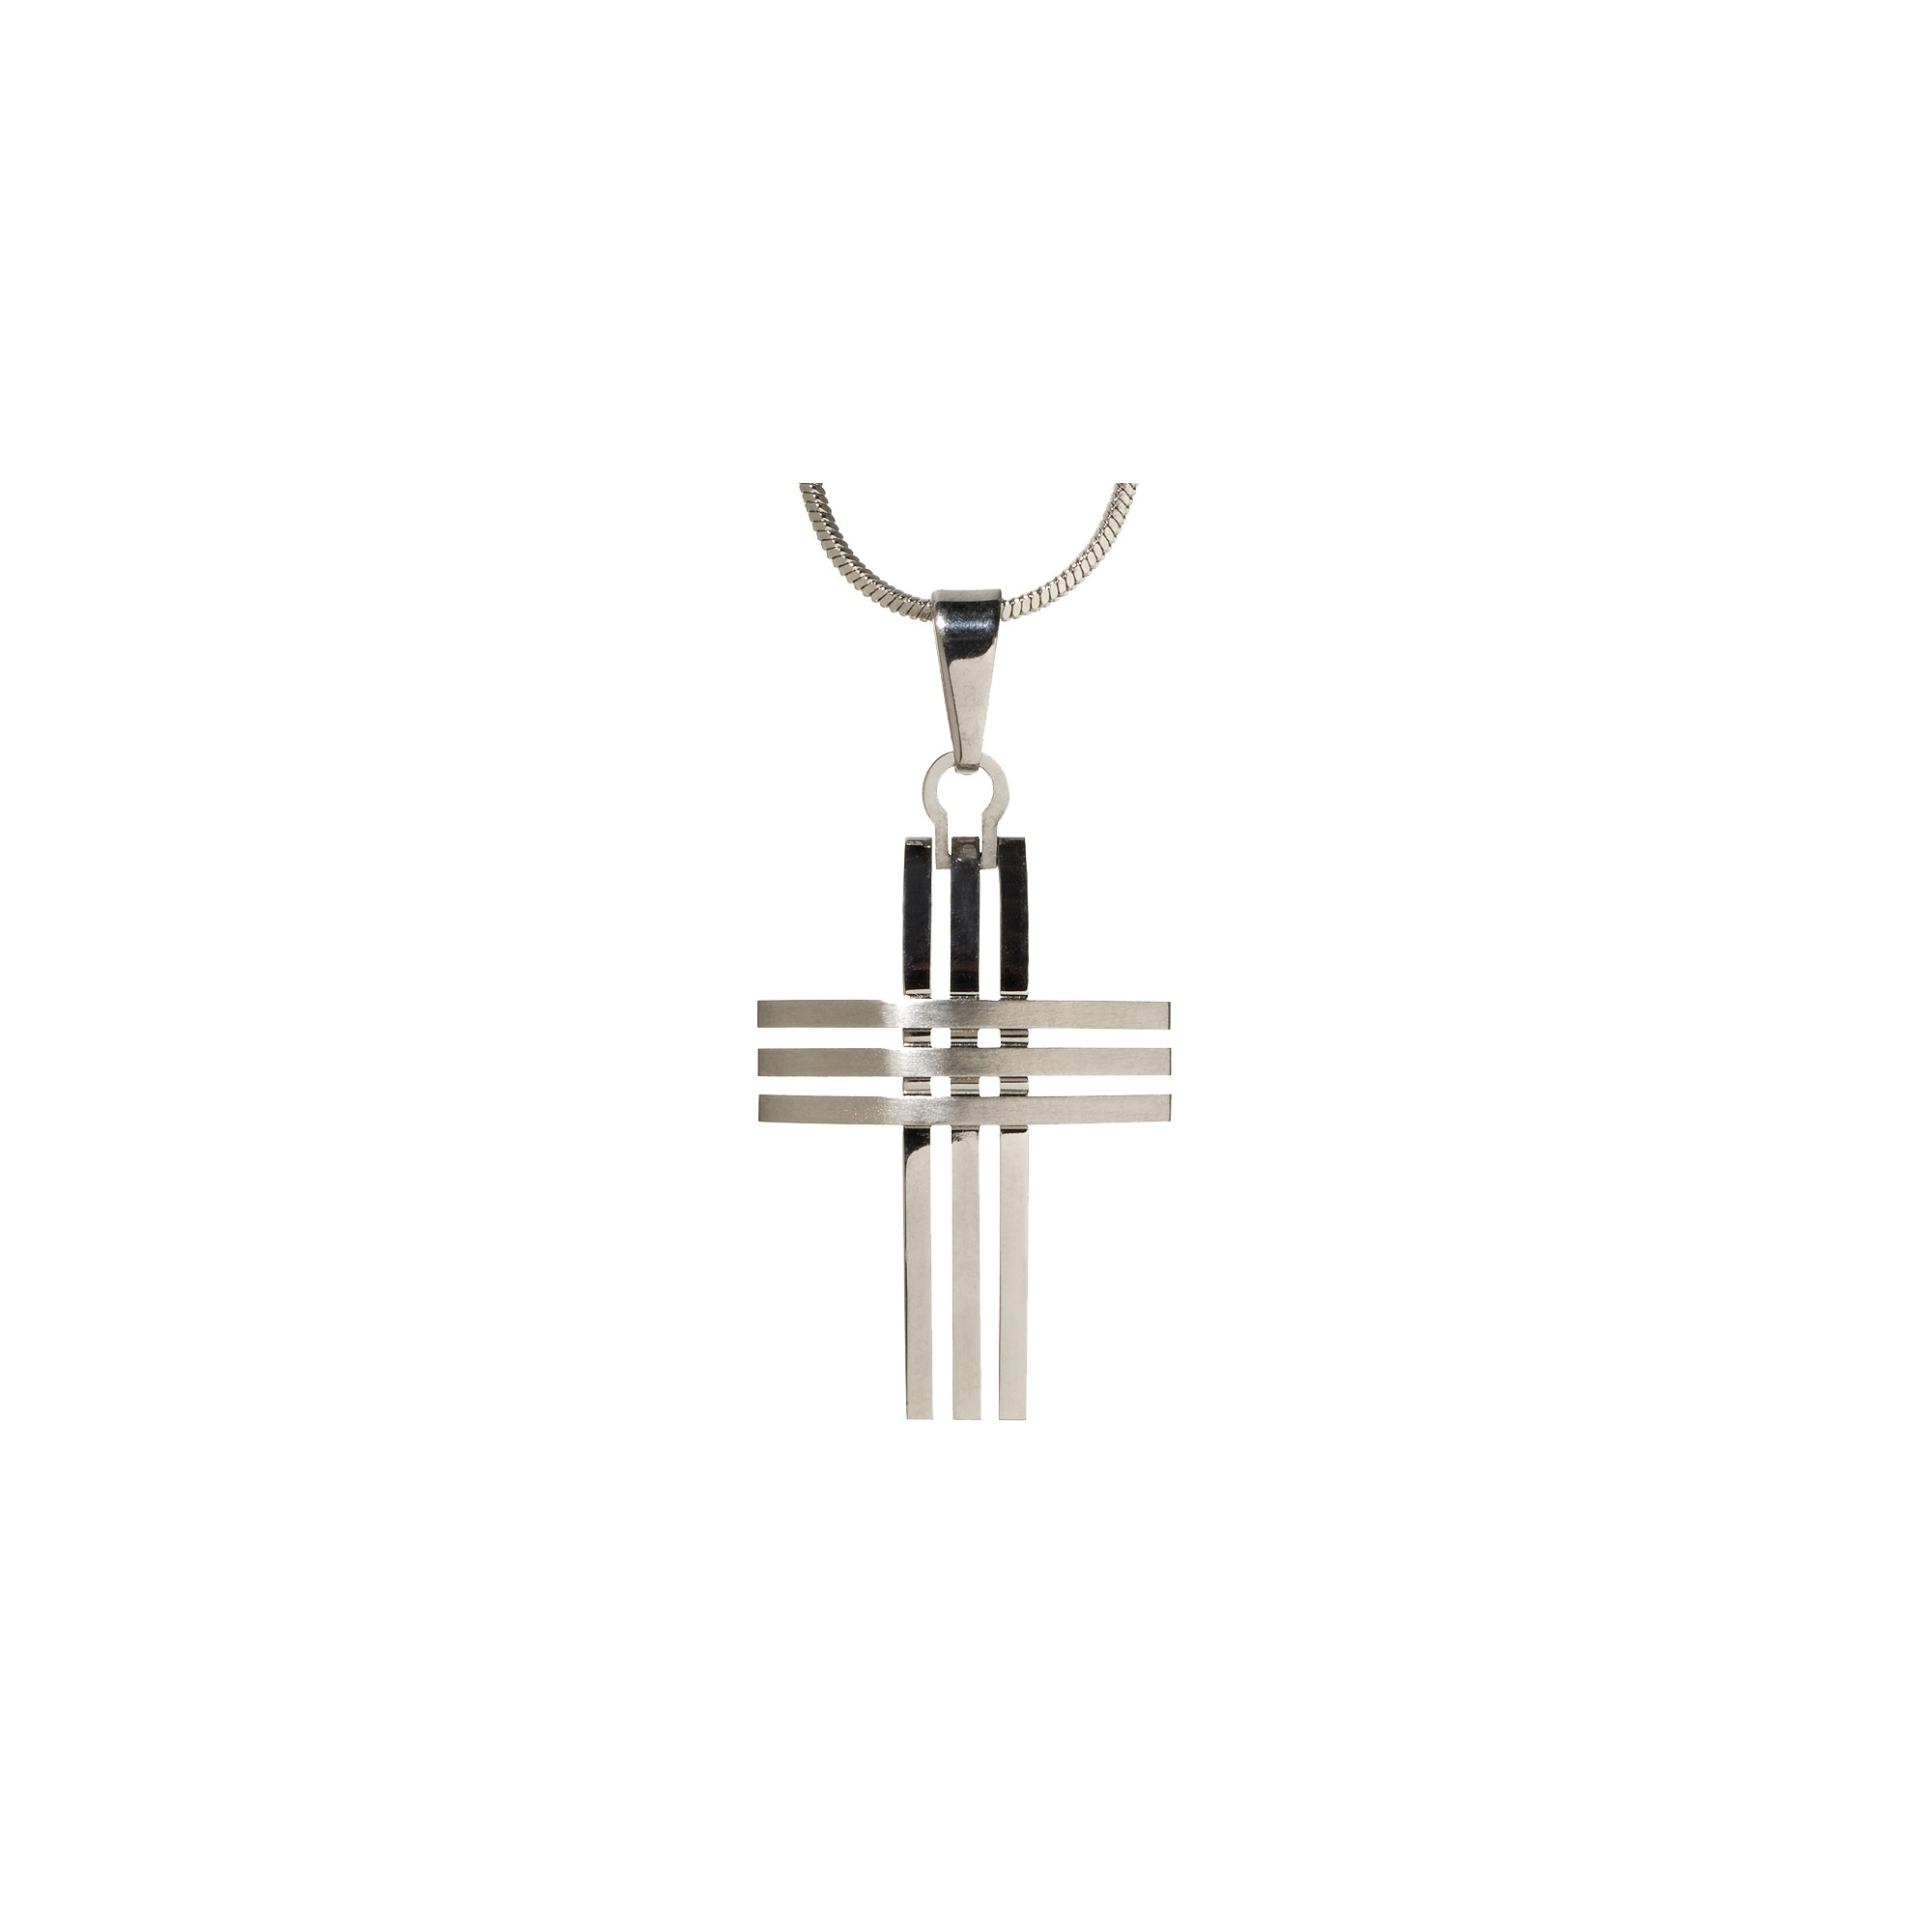 Men's Triple-Row Cross Pendant Necklace, Size: Small, Silver/Silver